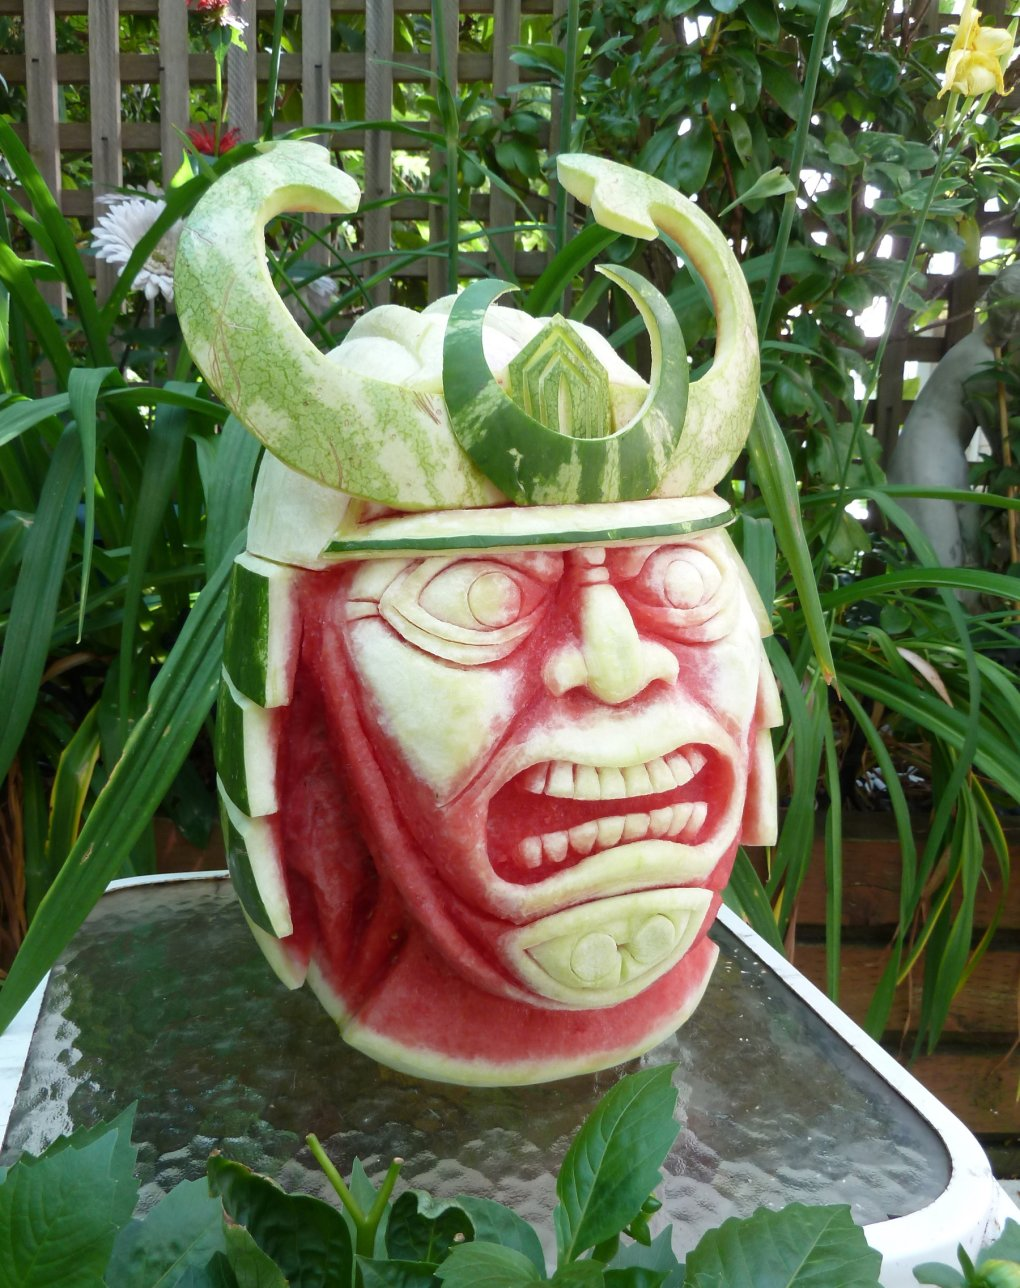 watermelon samurai